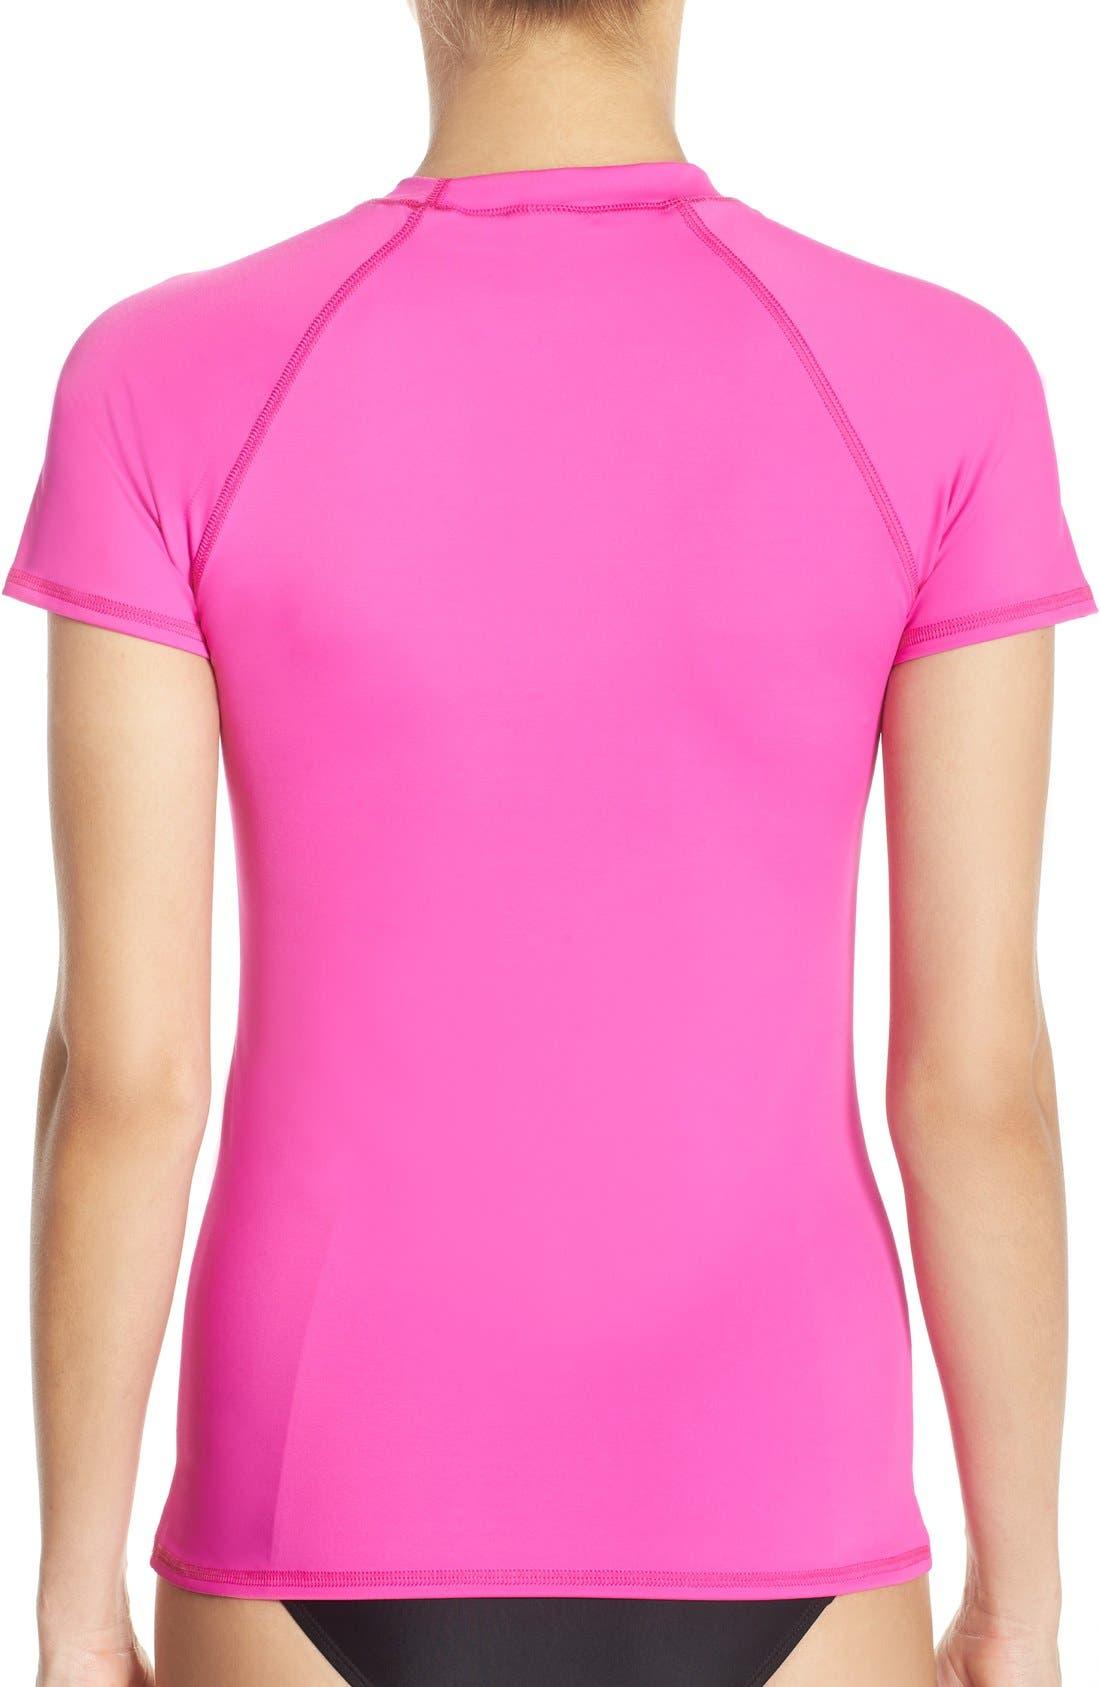 'Smoothies in Motion' Short Sleeve Rashguard,                             Alternate thumbnail 11, color,